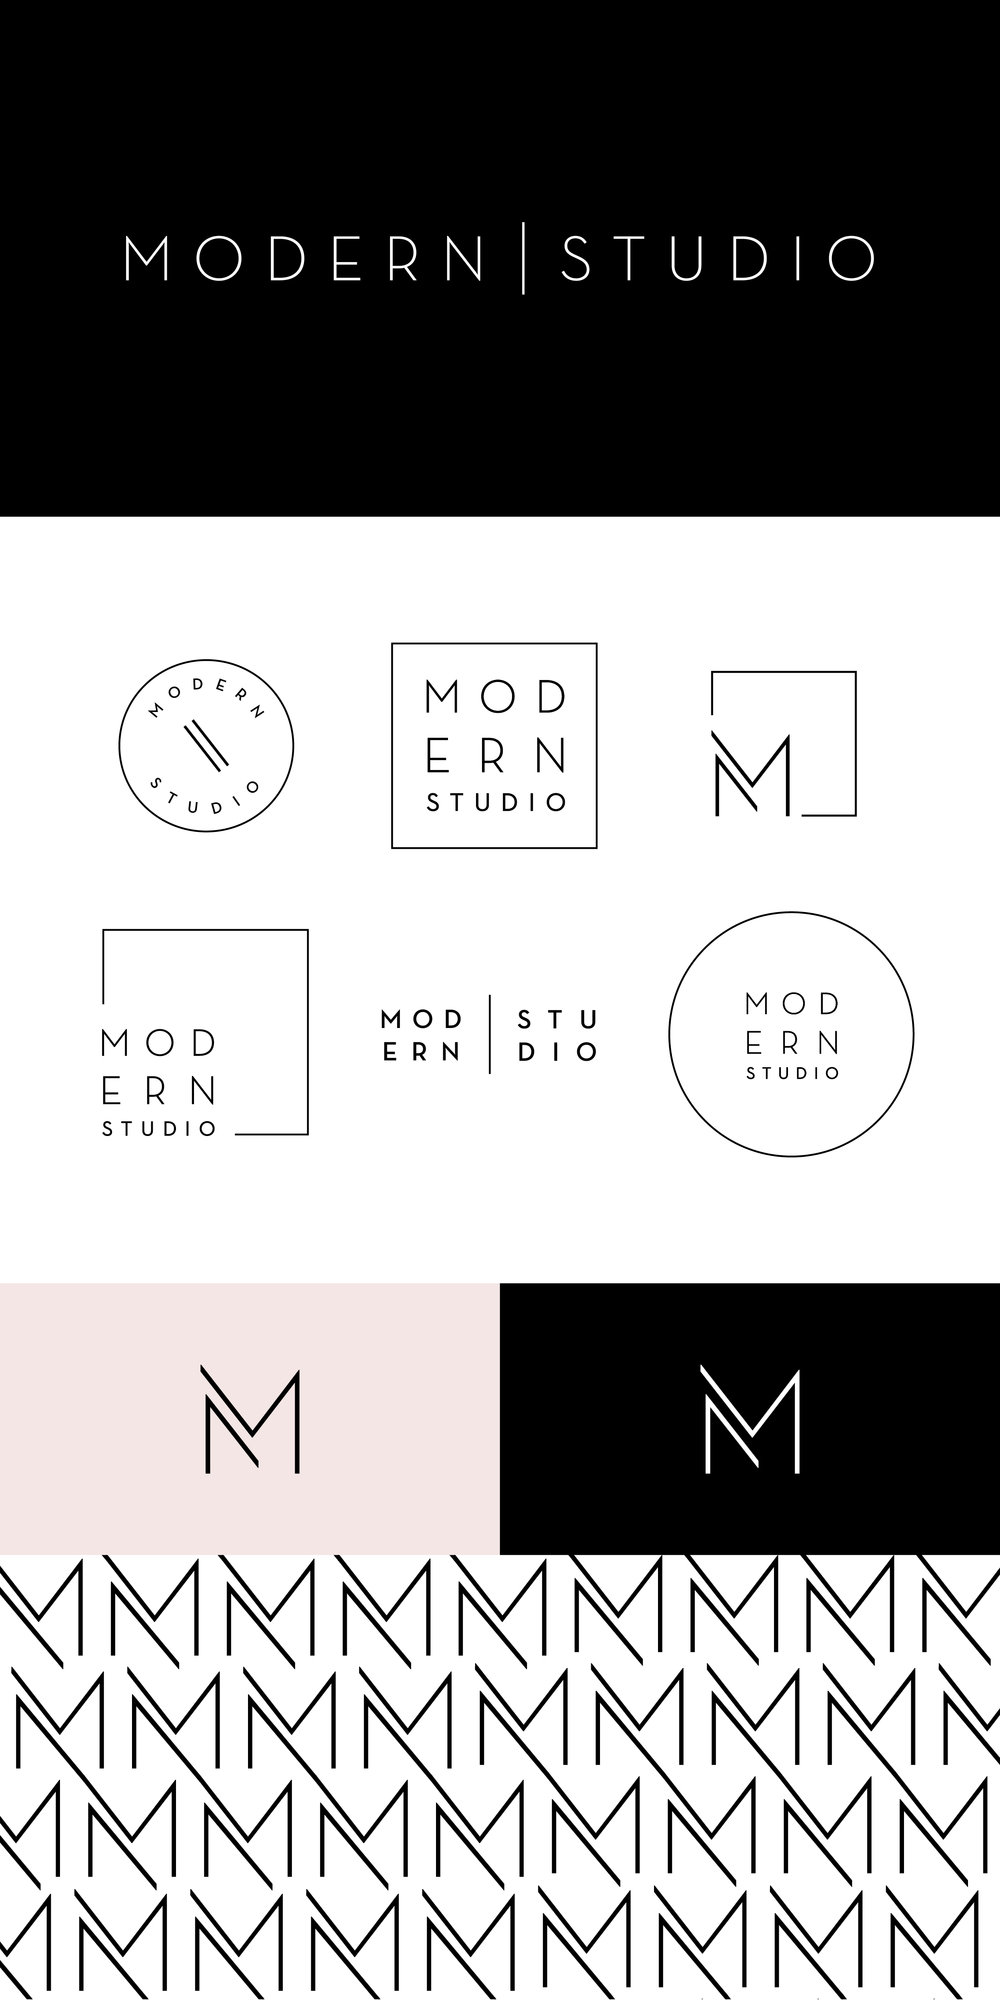 modern+studio+contemporary+branding+design+brand+logo+graphic+minimal+clean+elegant+simple+M+angles+linear+geometric+sharp+identity